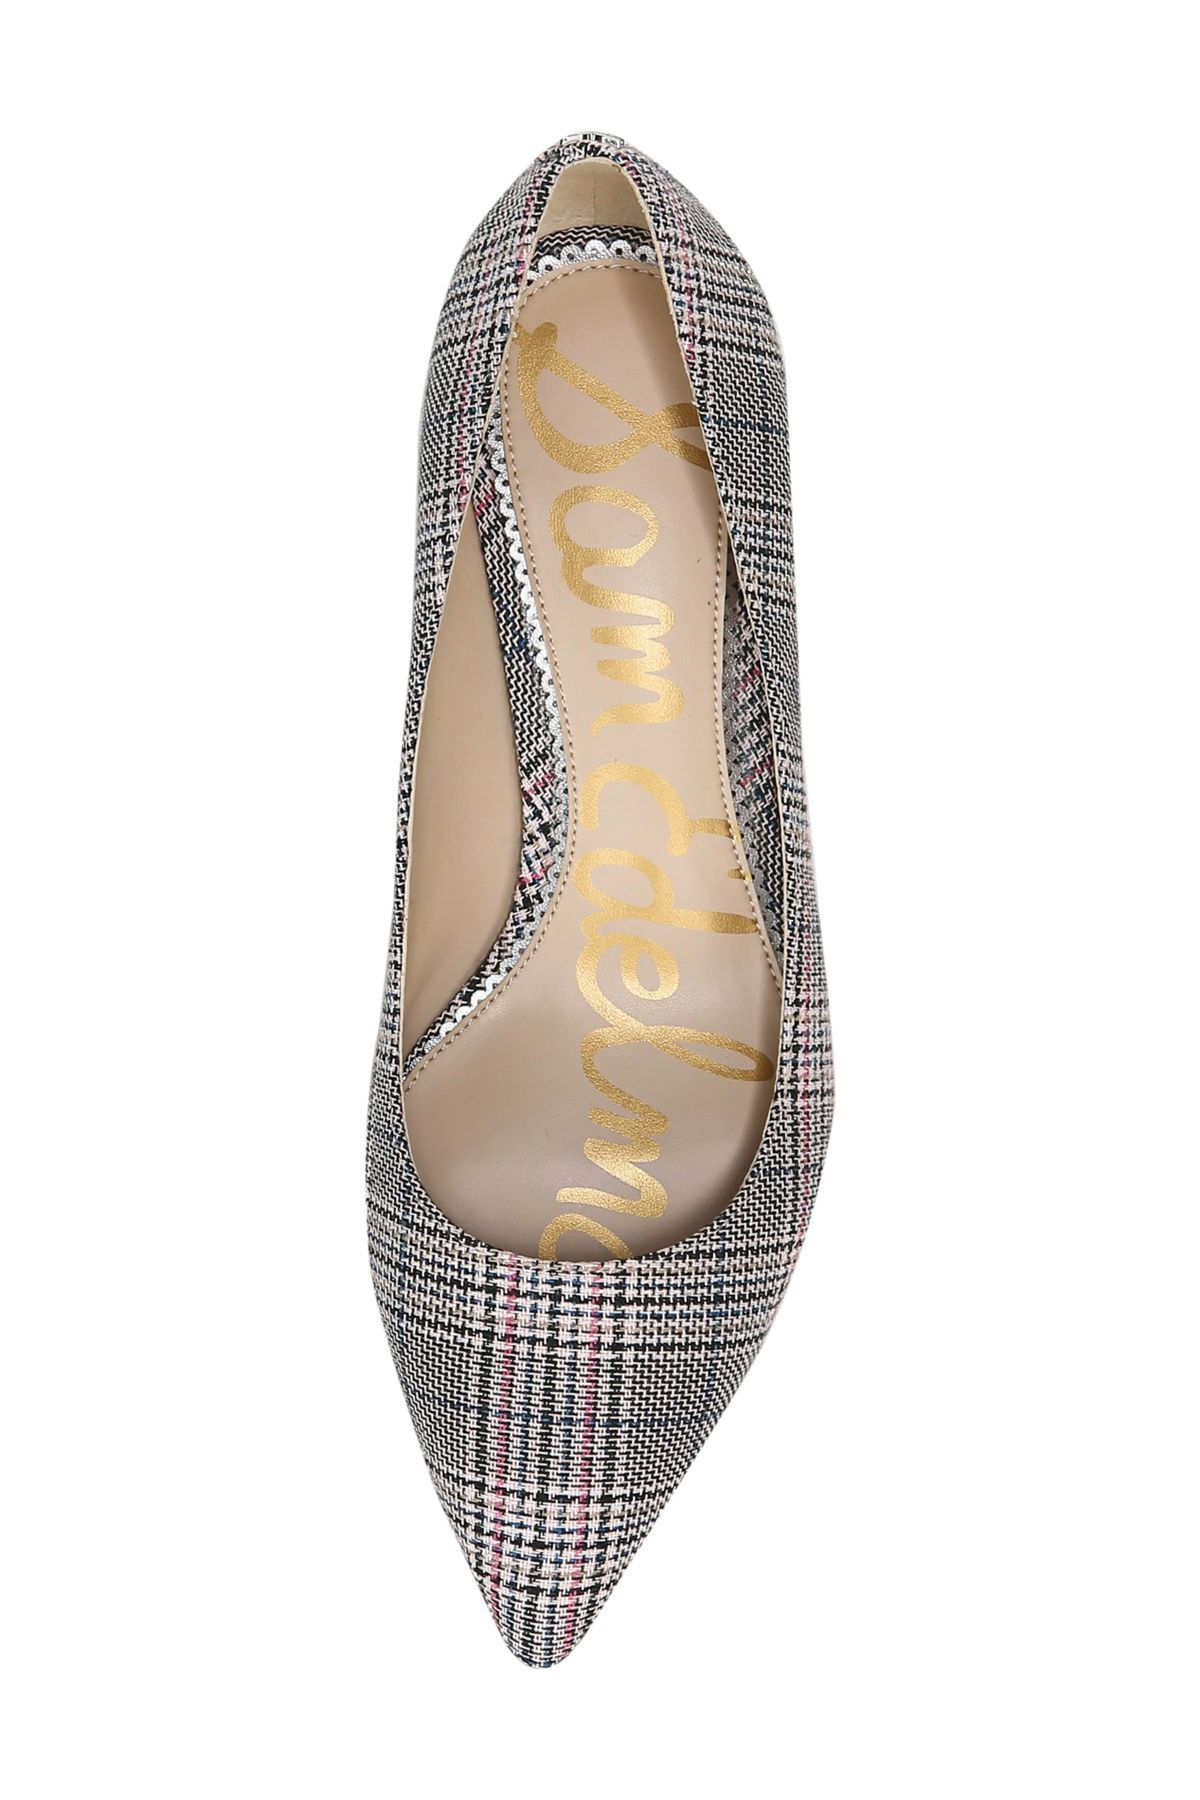 Sam Edelman Dori Plaid Kitten Heel Pump In 2020 Kitten Heel Pumps Pumps Heels Kitten Heels